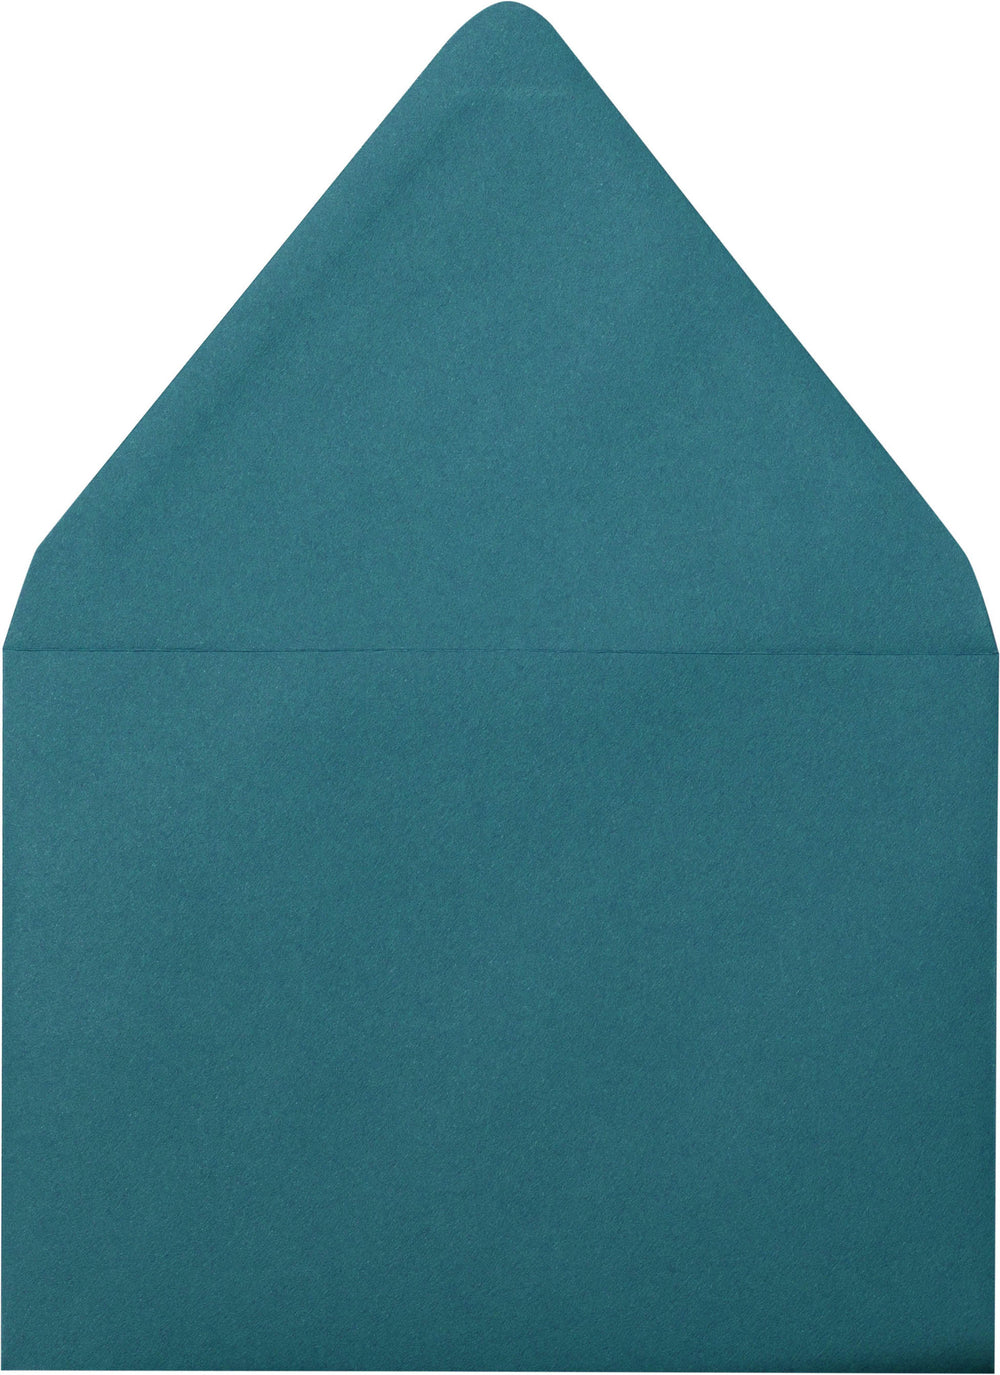 "A-1 (4 Bar) Teal Solid Euro Flap Envelopes (3 5/8"" x 5 1/8"")"